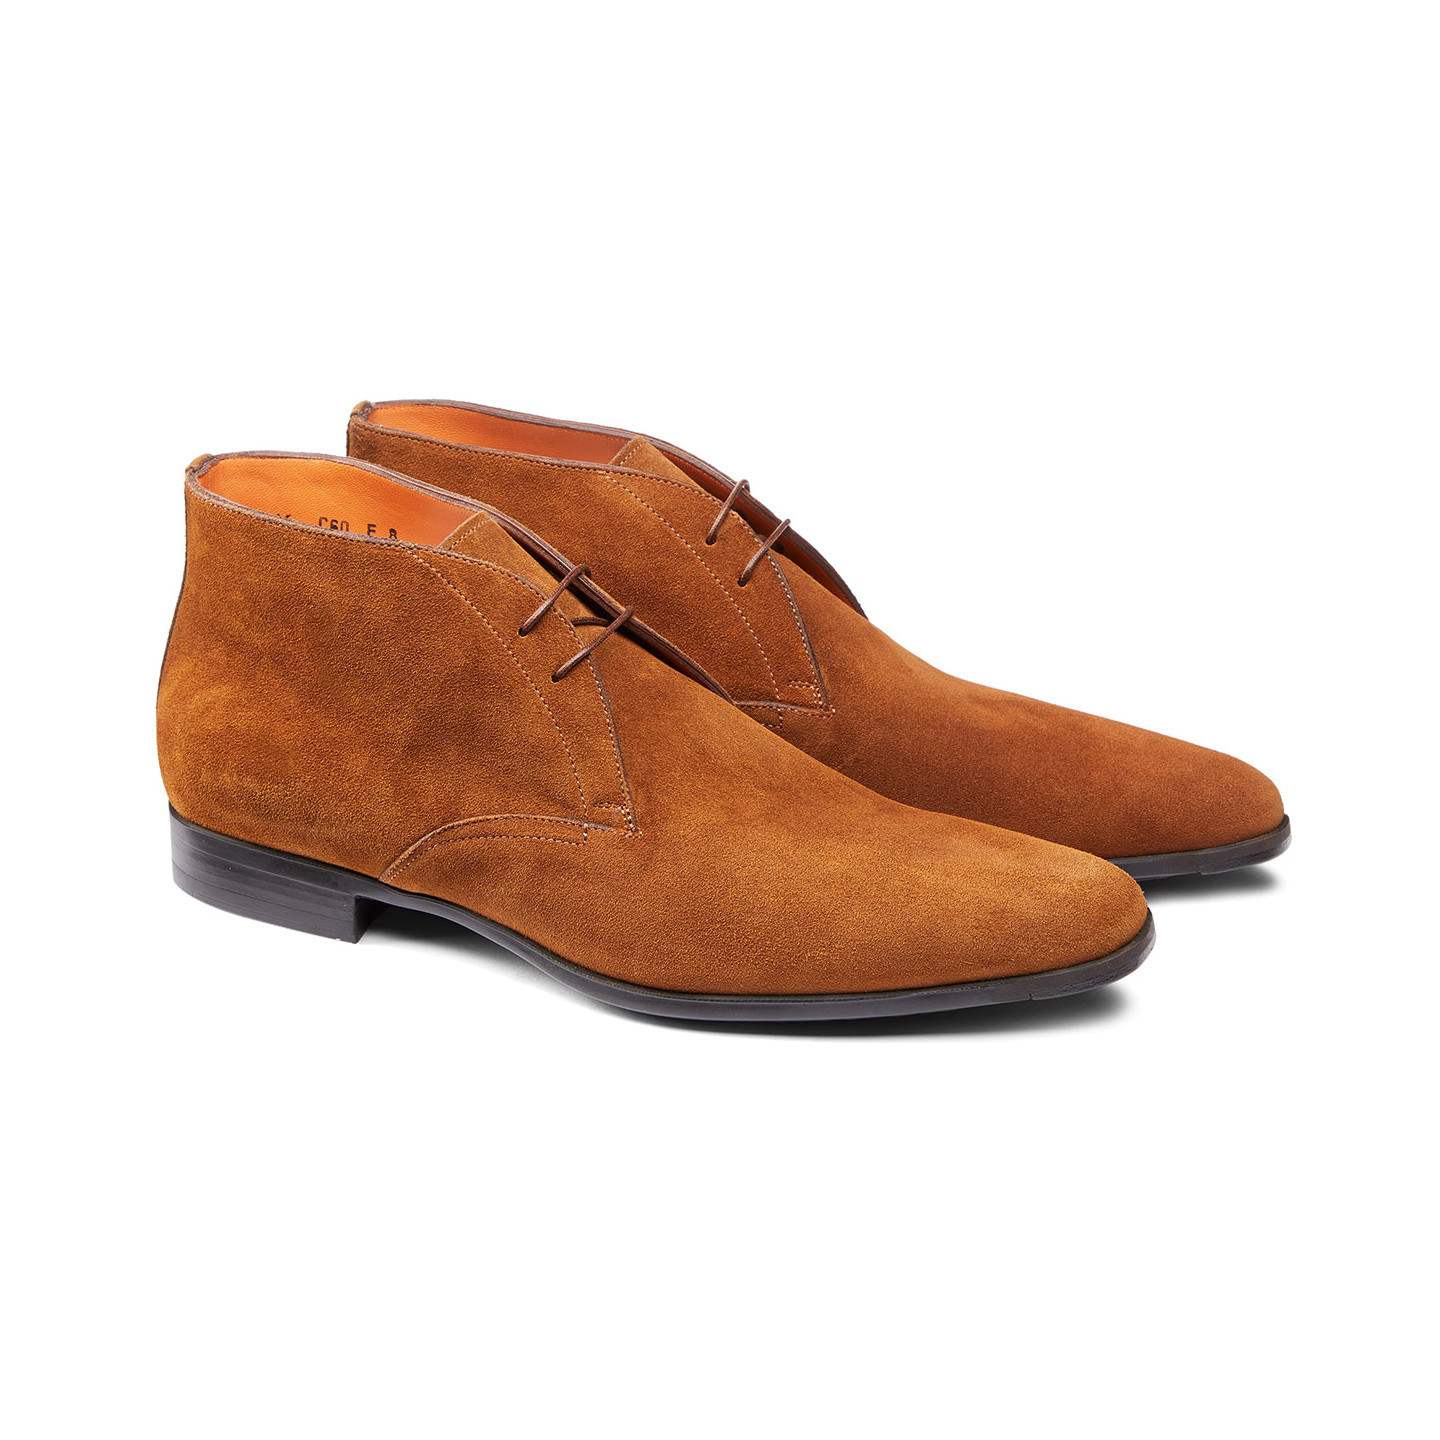 Handmade Men's Brown Suede Chukka High Ankle Lace Up Boots